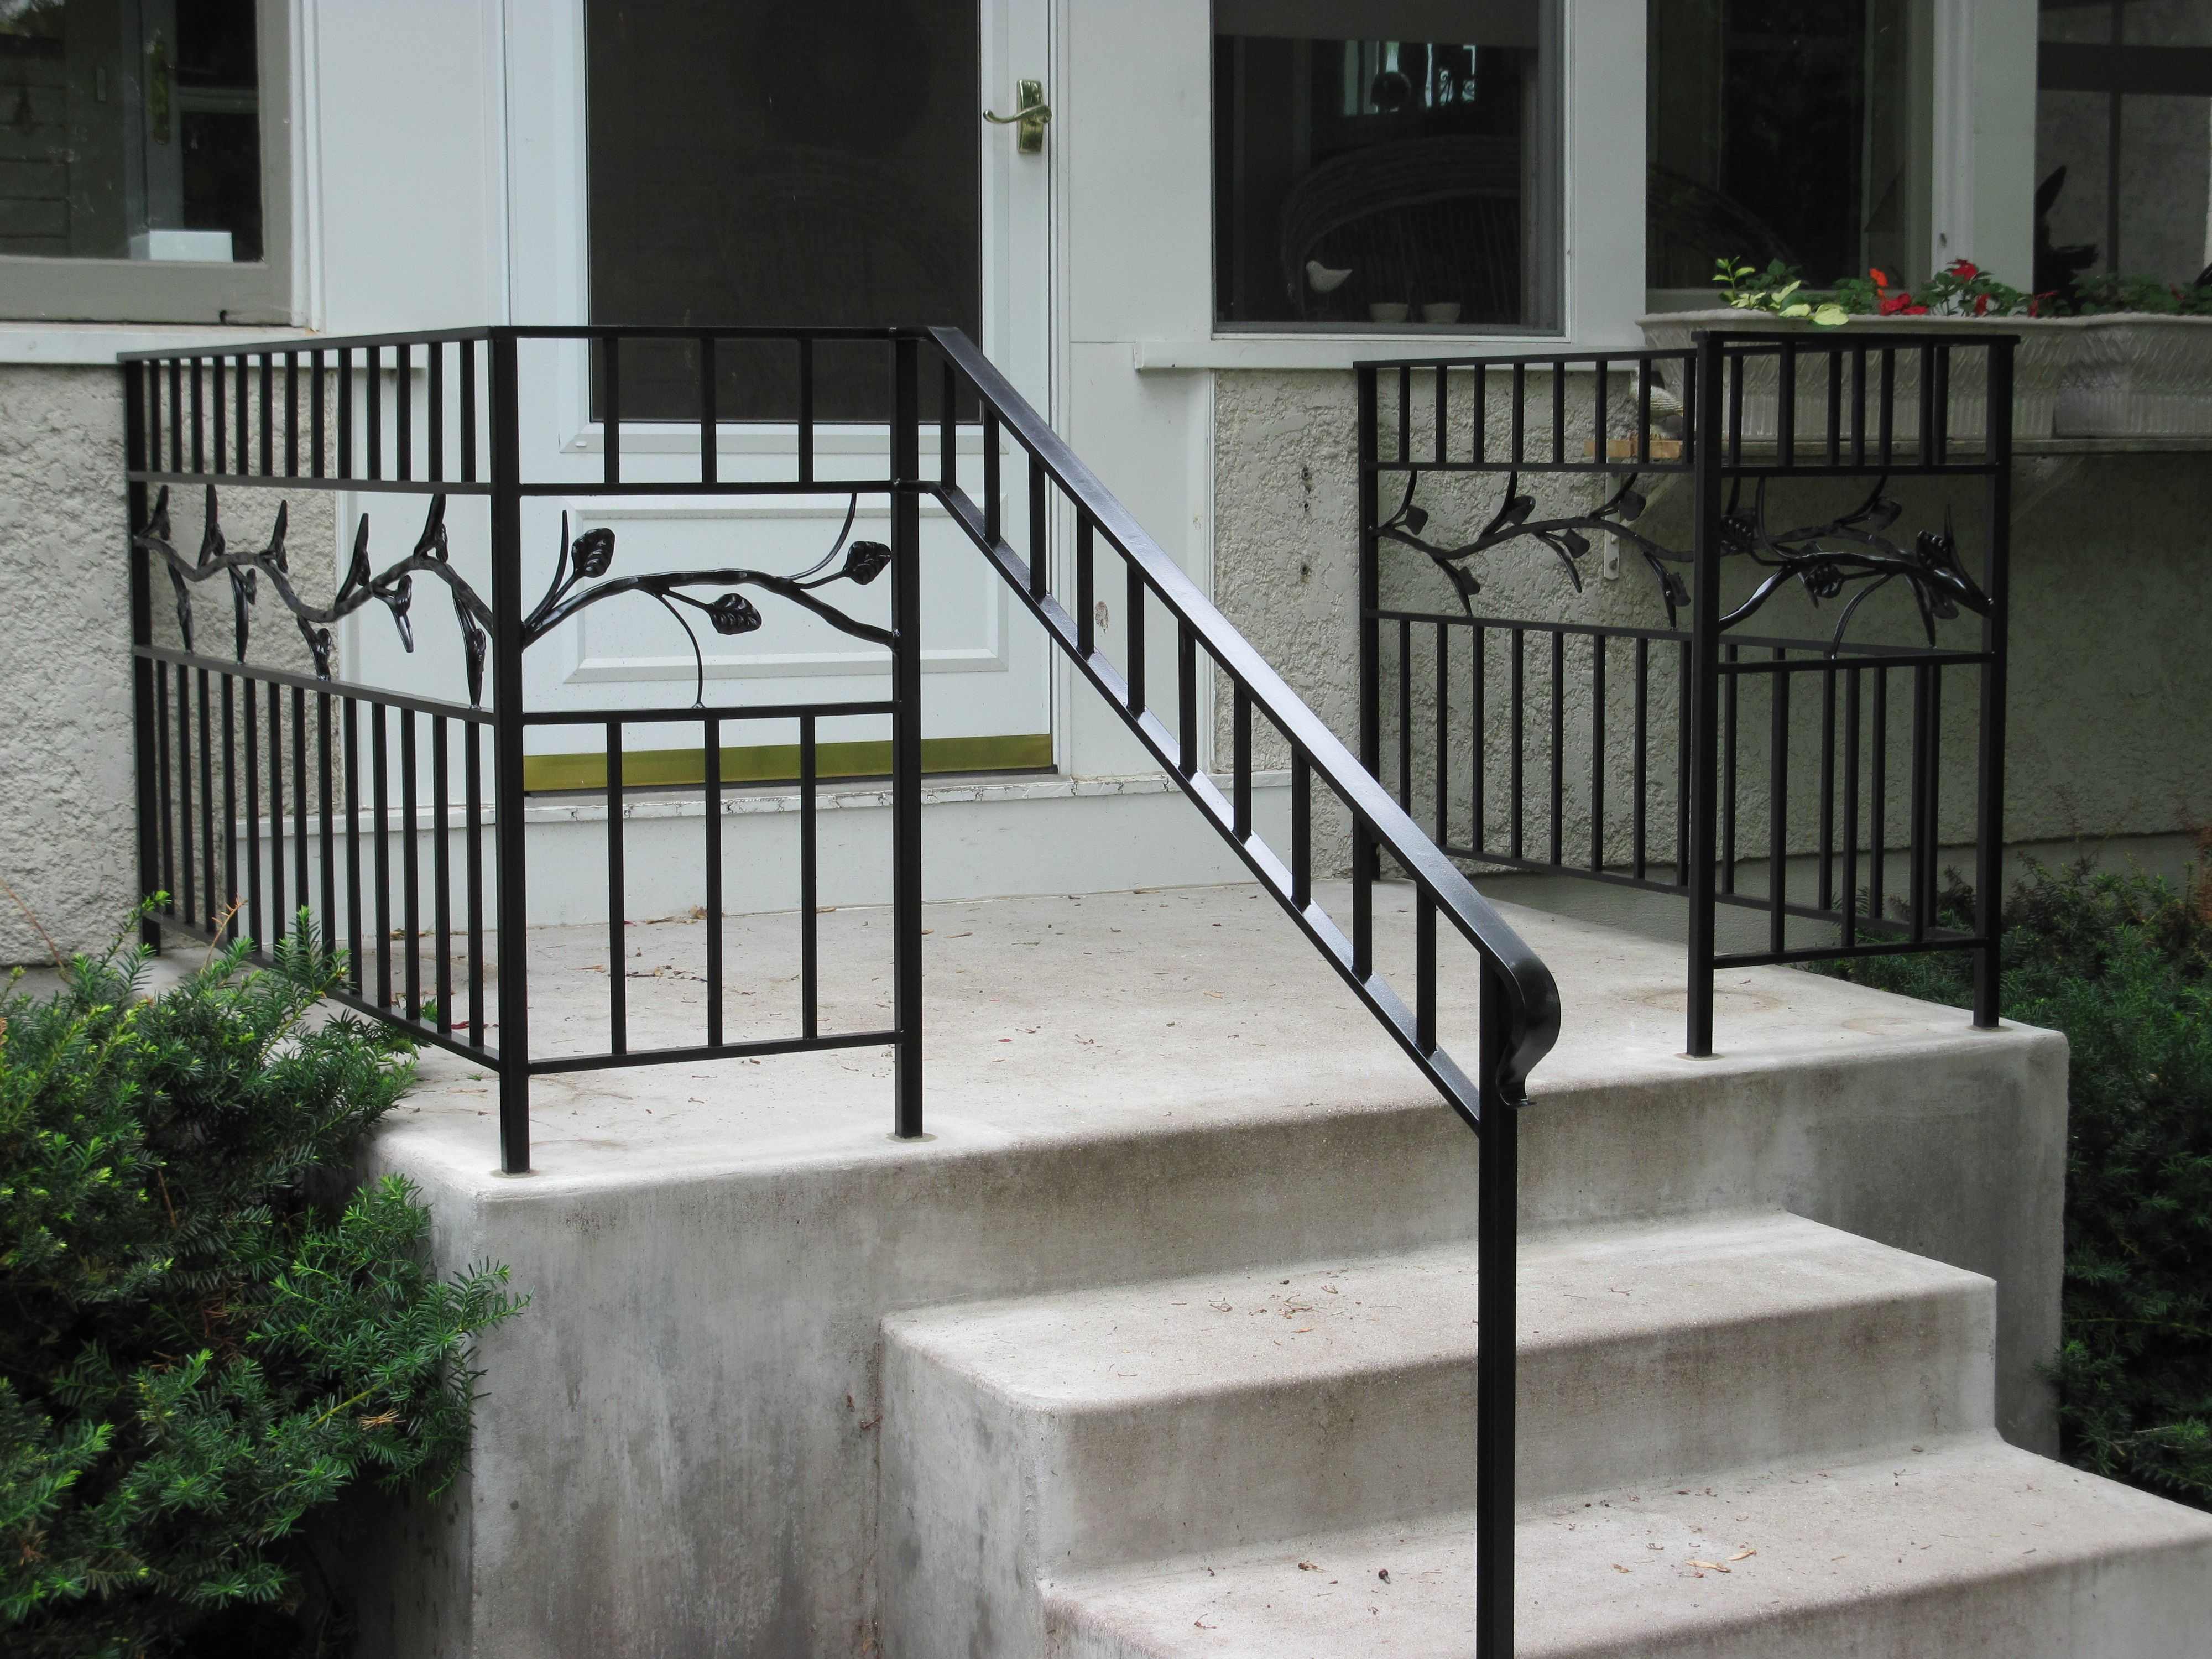 Iron Step Railing With Leaf And Vine Design Railings Outdoor